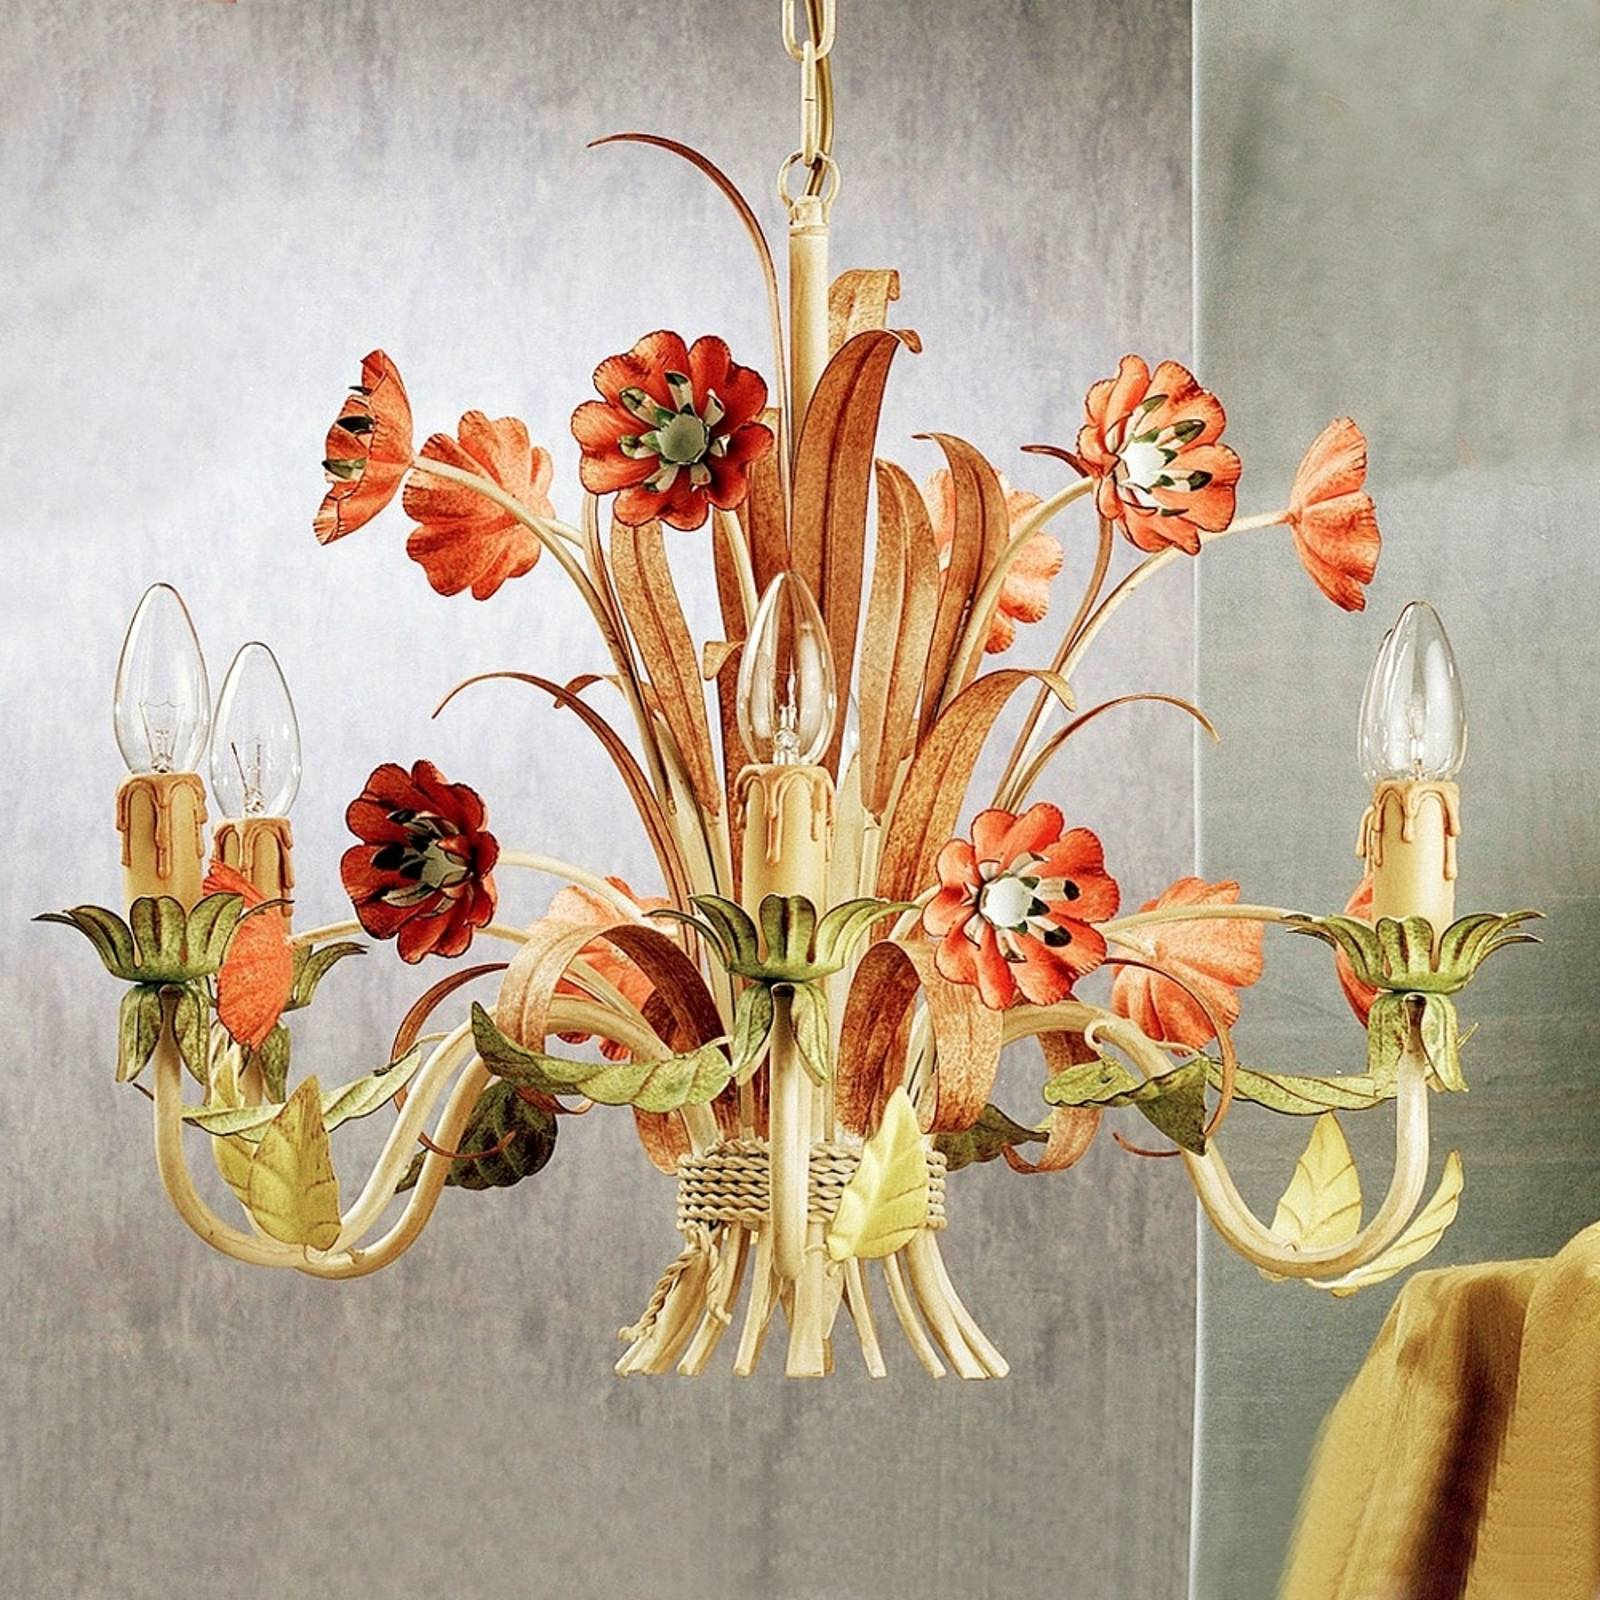 NOVARA colourful chandelier from Ferro Luce